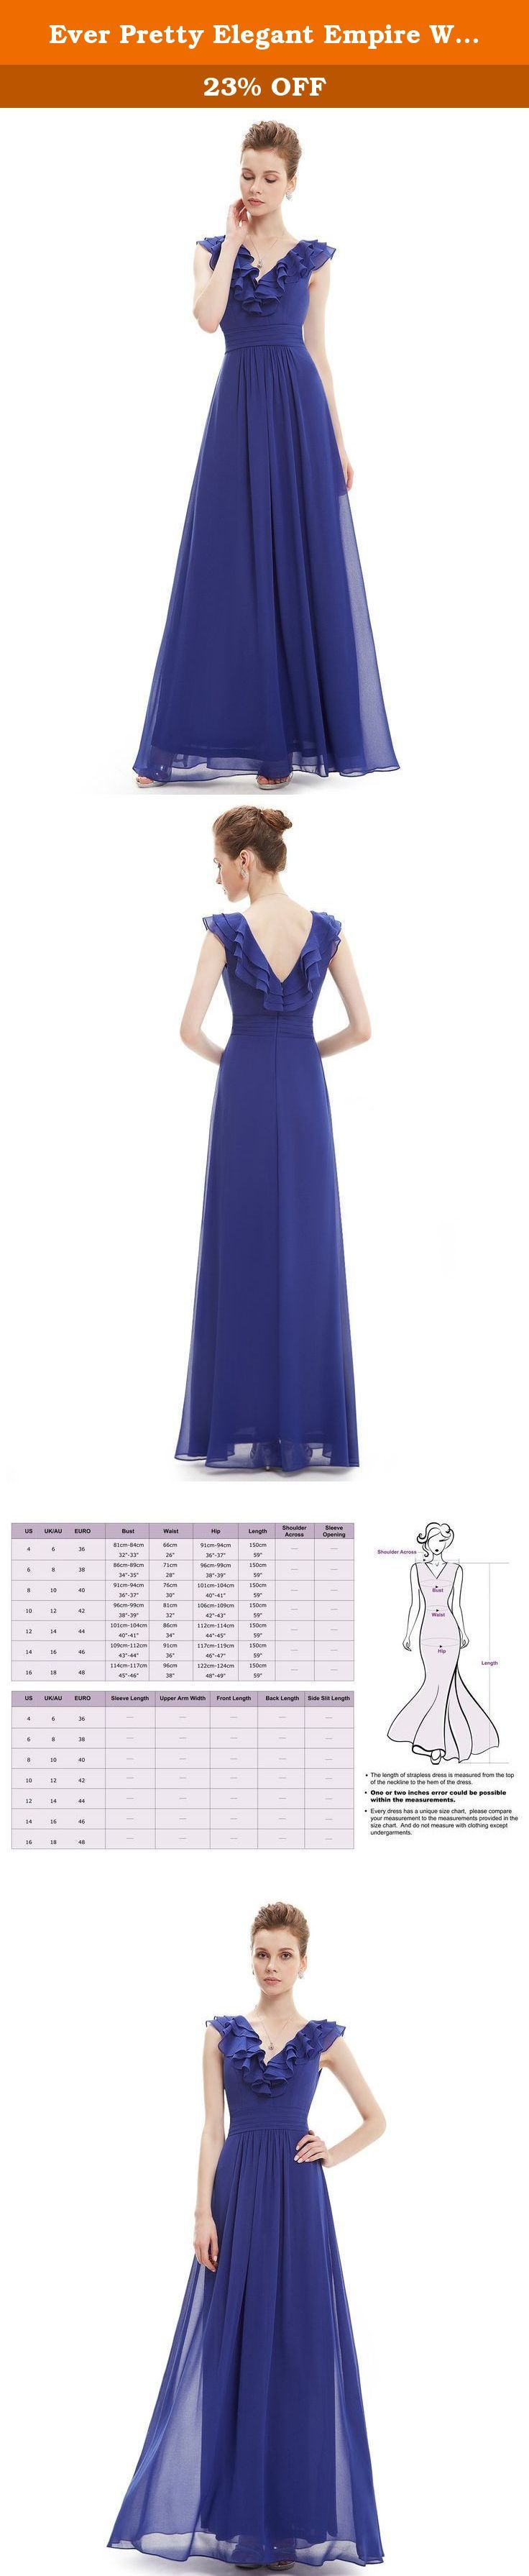 Ever Pretty Elegant Empire Waist Sleeveless Long Chiffon Sapphire Blue Mother of the Bride Dress 8 US. Ruffles are definitely making a great comeback. This dress adds just a touch of ruffles to the V neckline making it a classy choice for any event. Perfect for Mother of the Bride, Maid of Honor, Wedding Guest, Prom, Formal Dinners, and Cruise Dinners. A concealed zipper up the back secures the dress in place. A fitted waist allows the dress to flow at the bottom, adding that touch of...